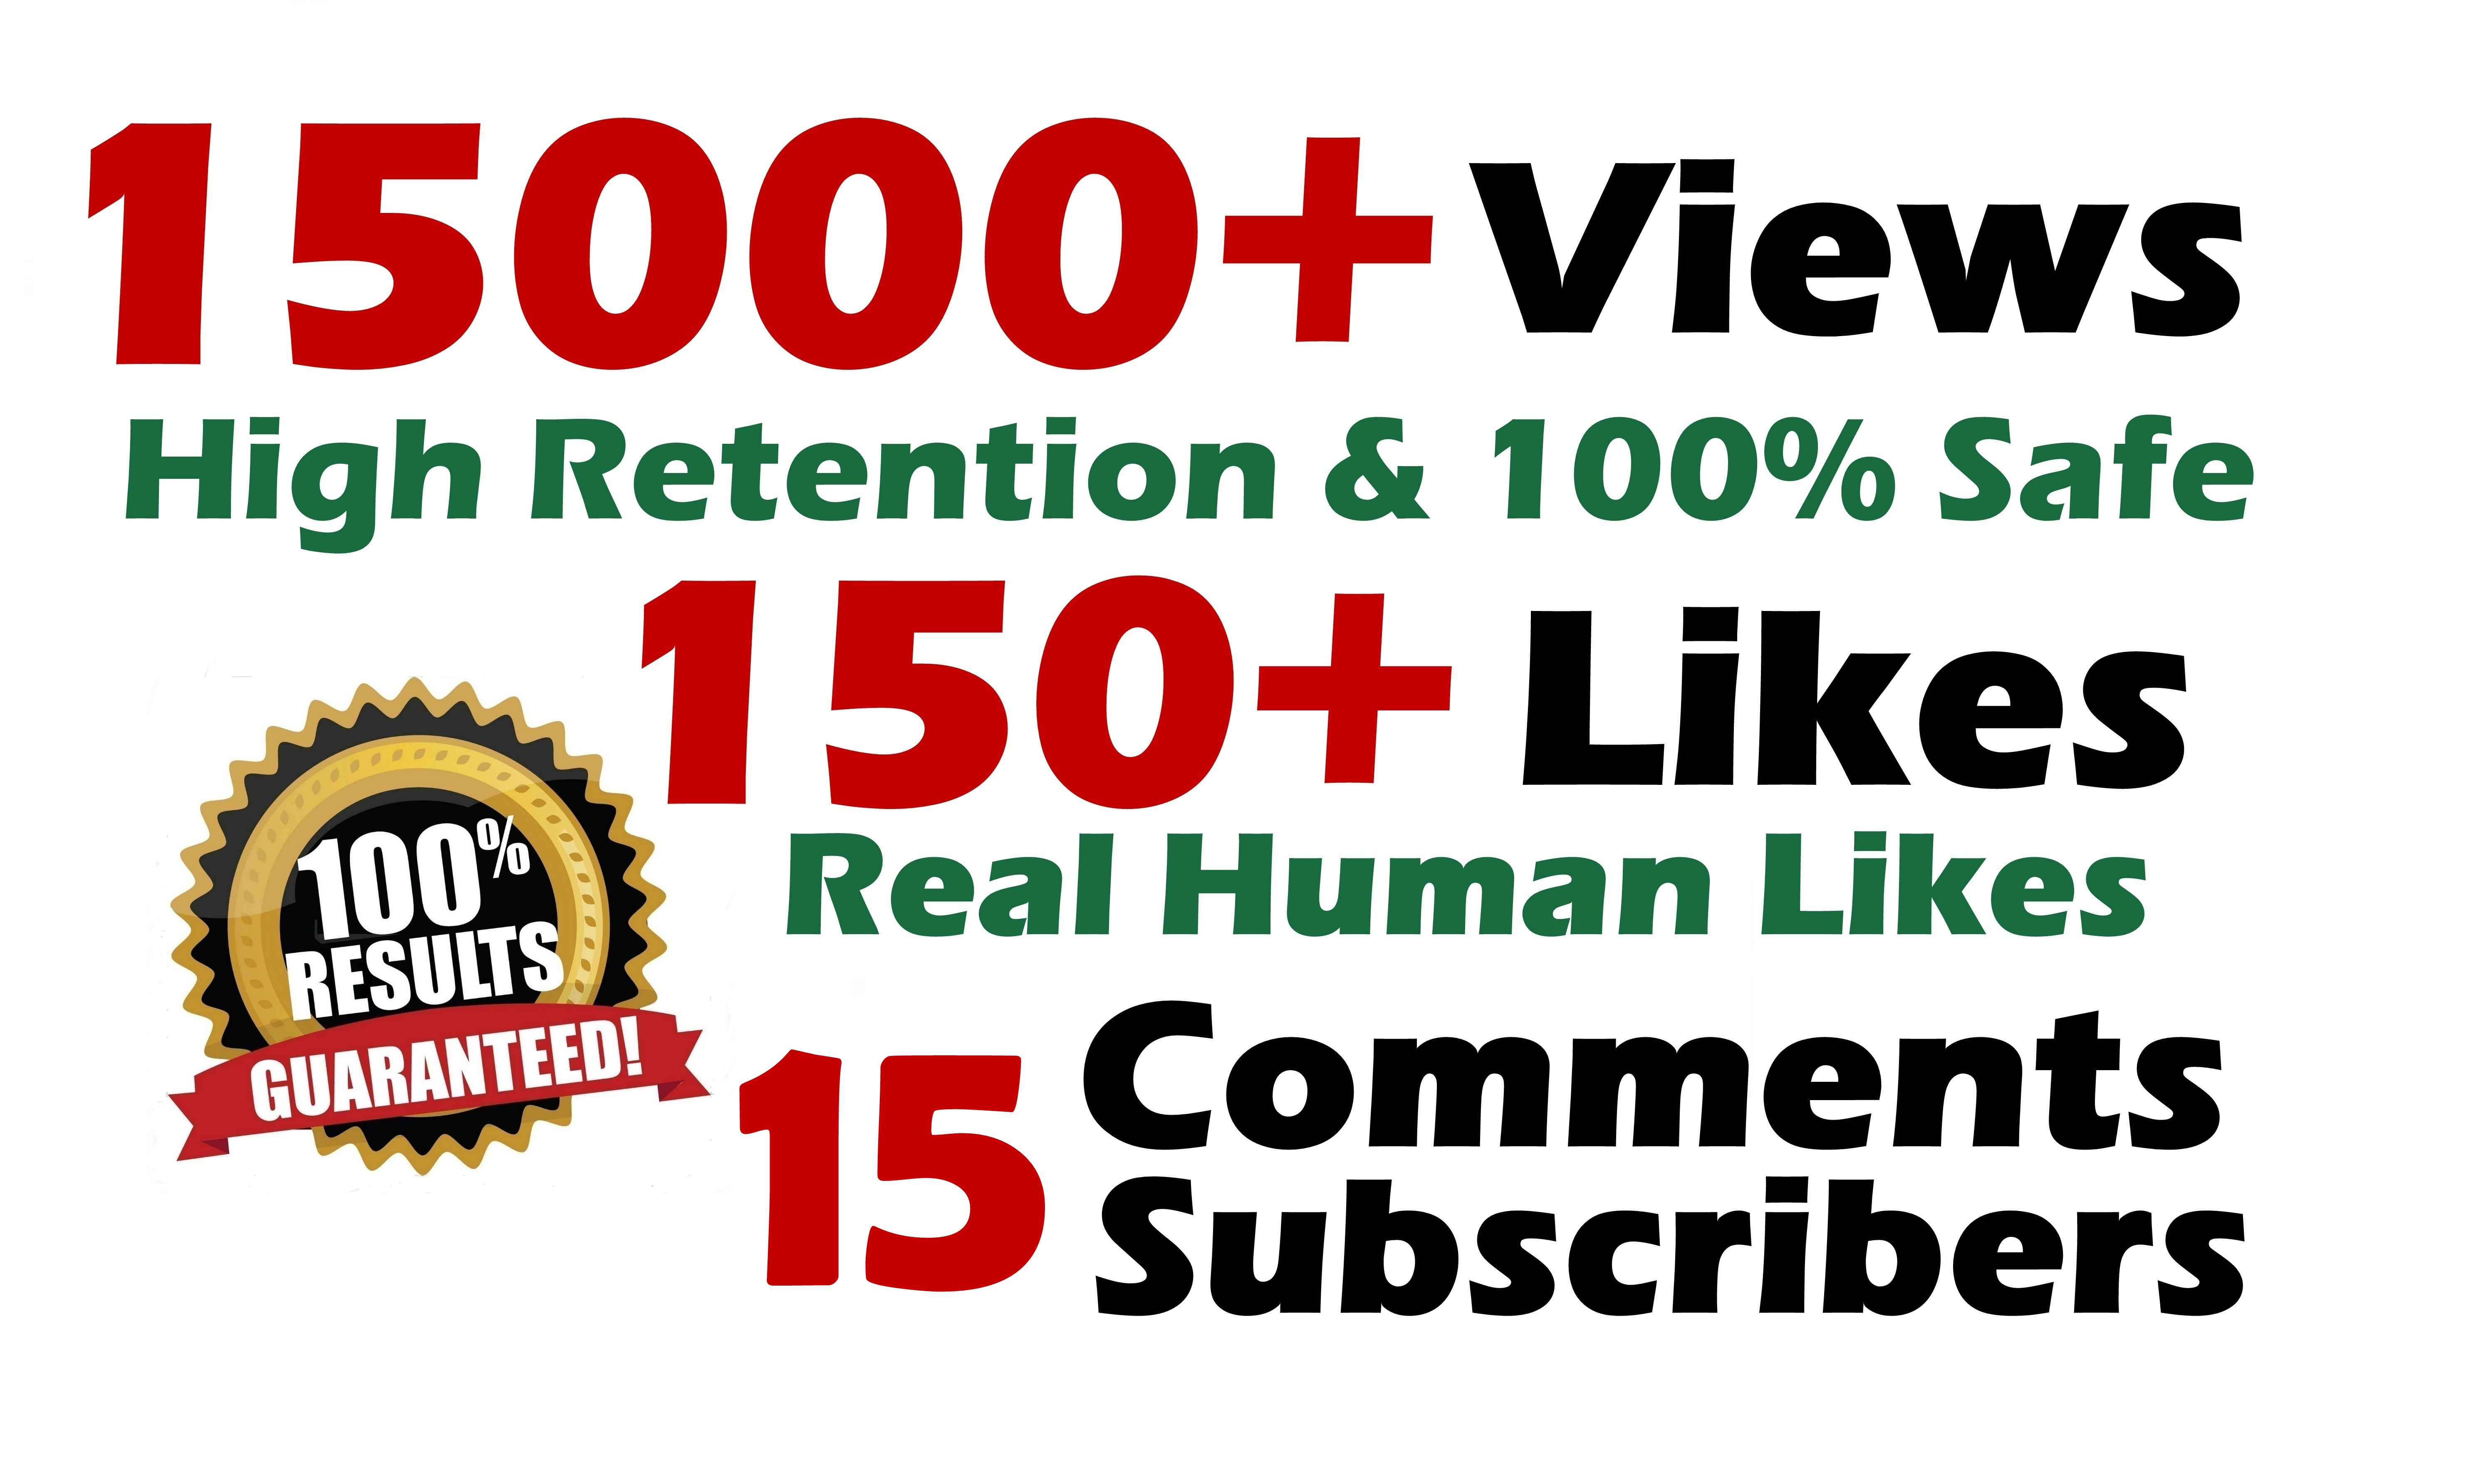 Youtube 15000+ Views and 150+ Likes with 15 Comments Splitable SeoPromotion